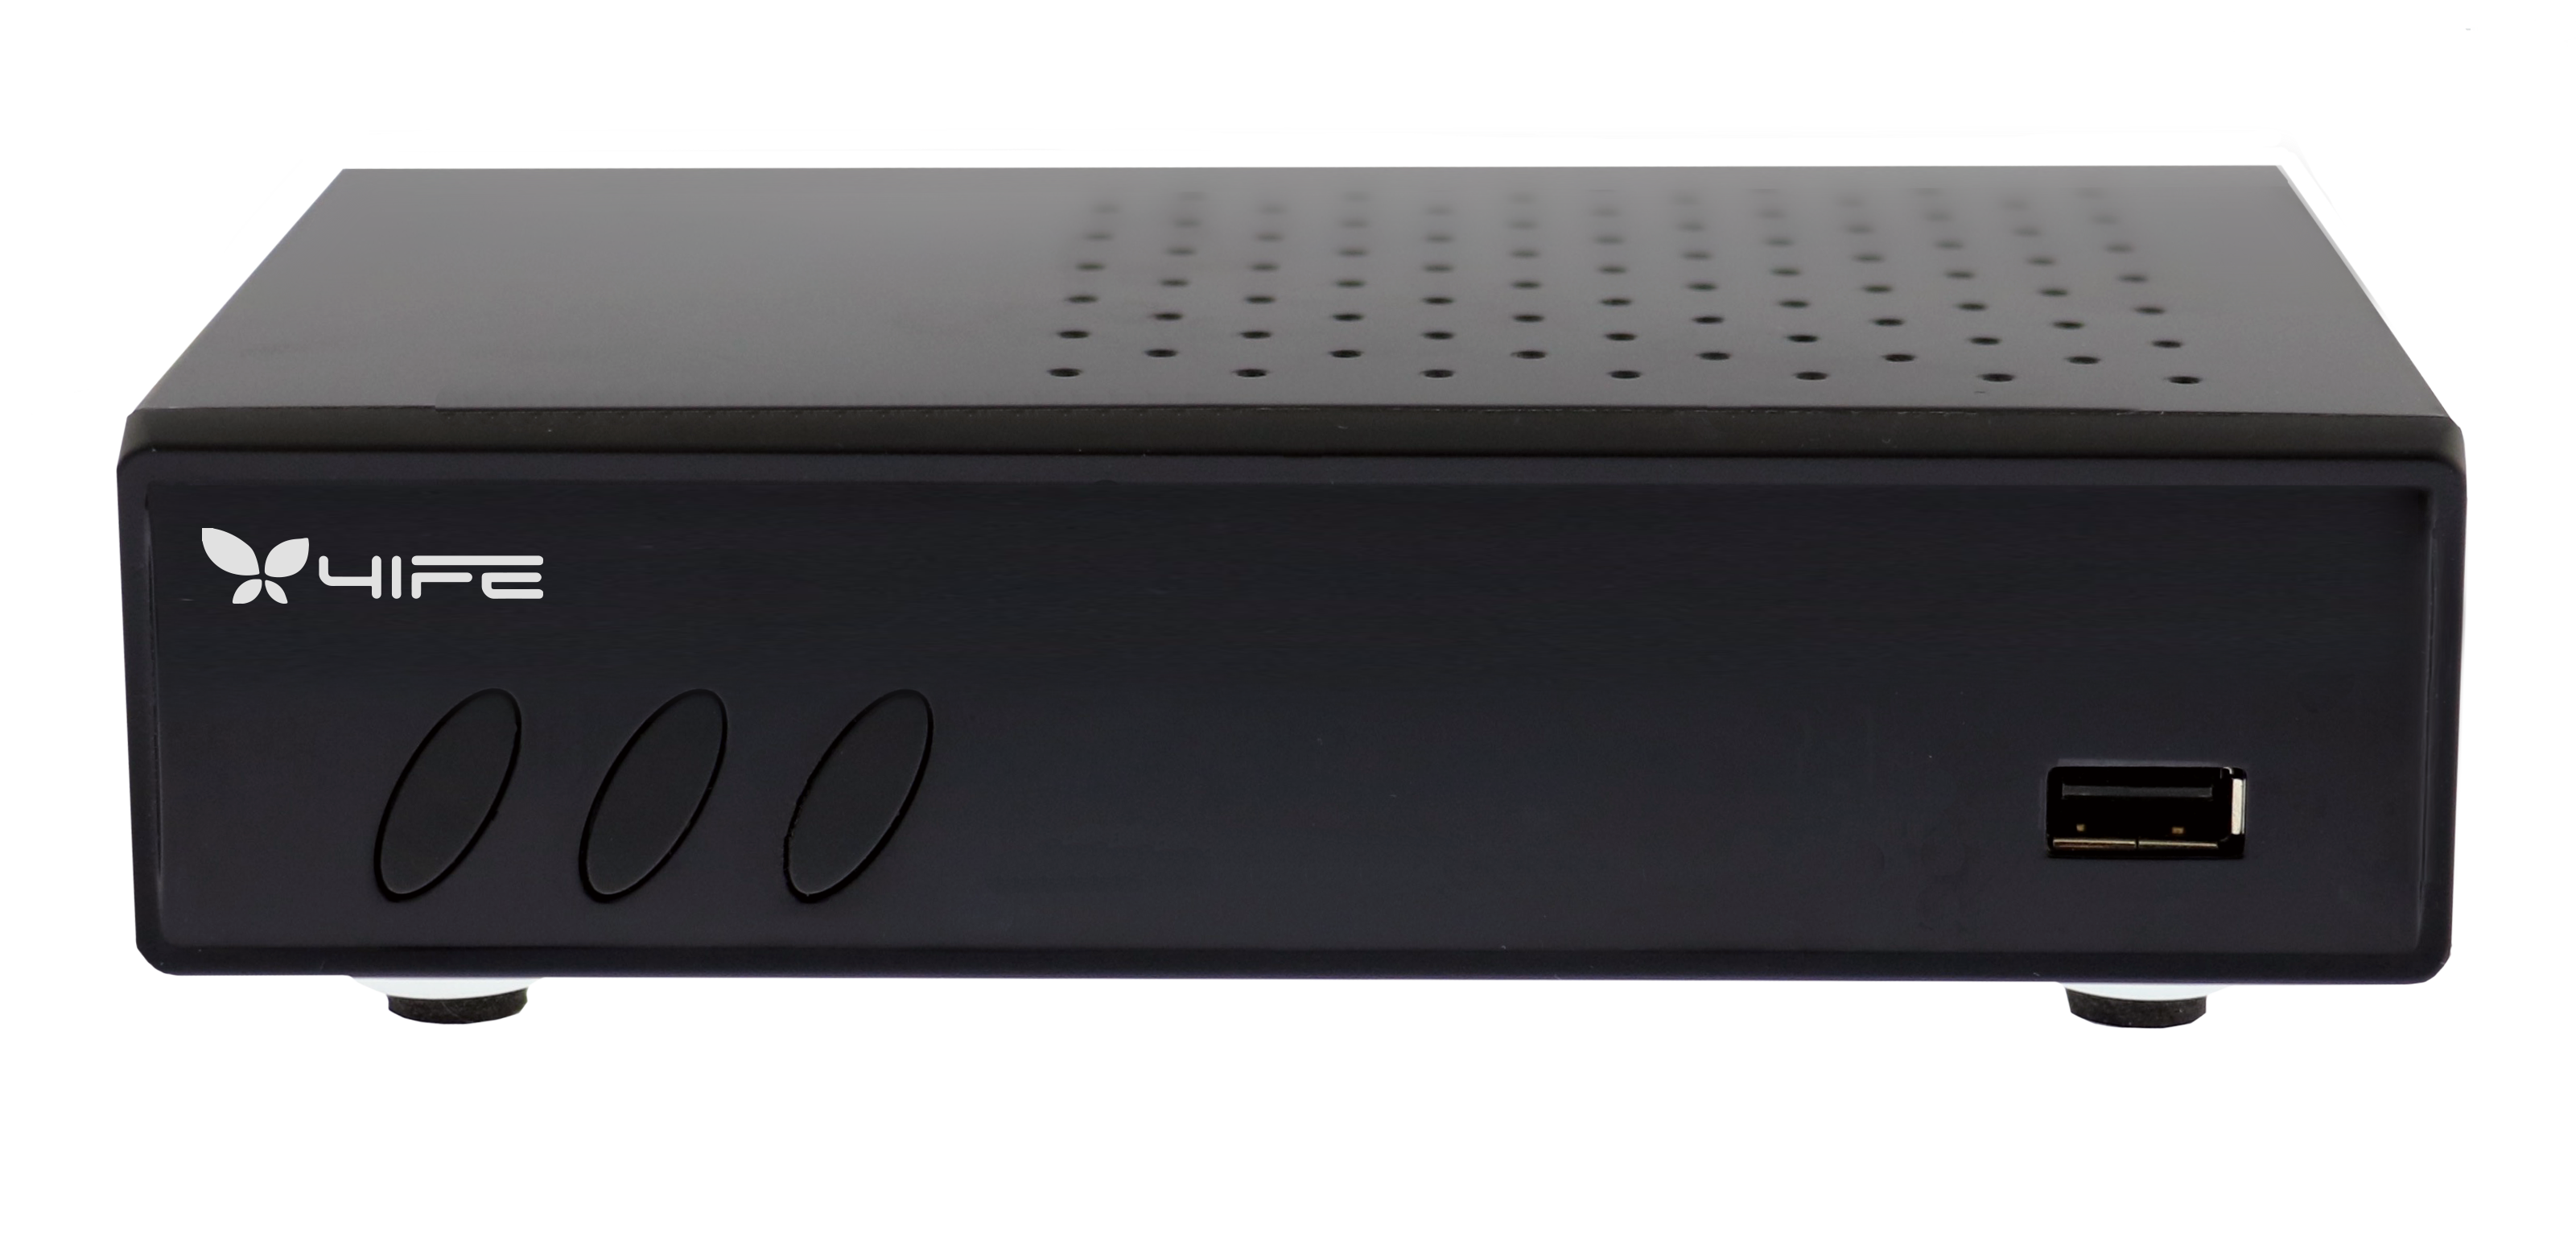 4ife SV-402 Combo- Full HD Terrestrial & Satellite Receiver with Media Player